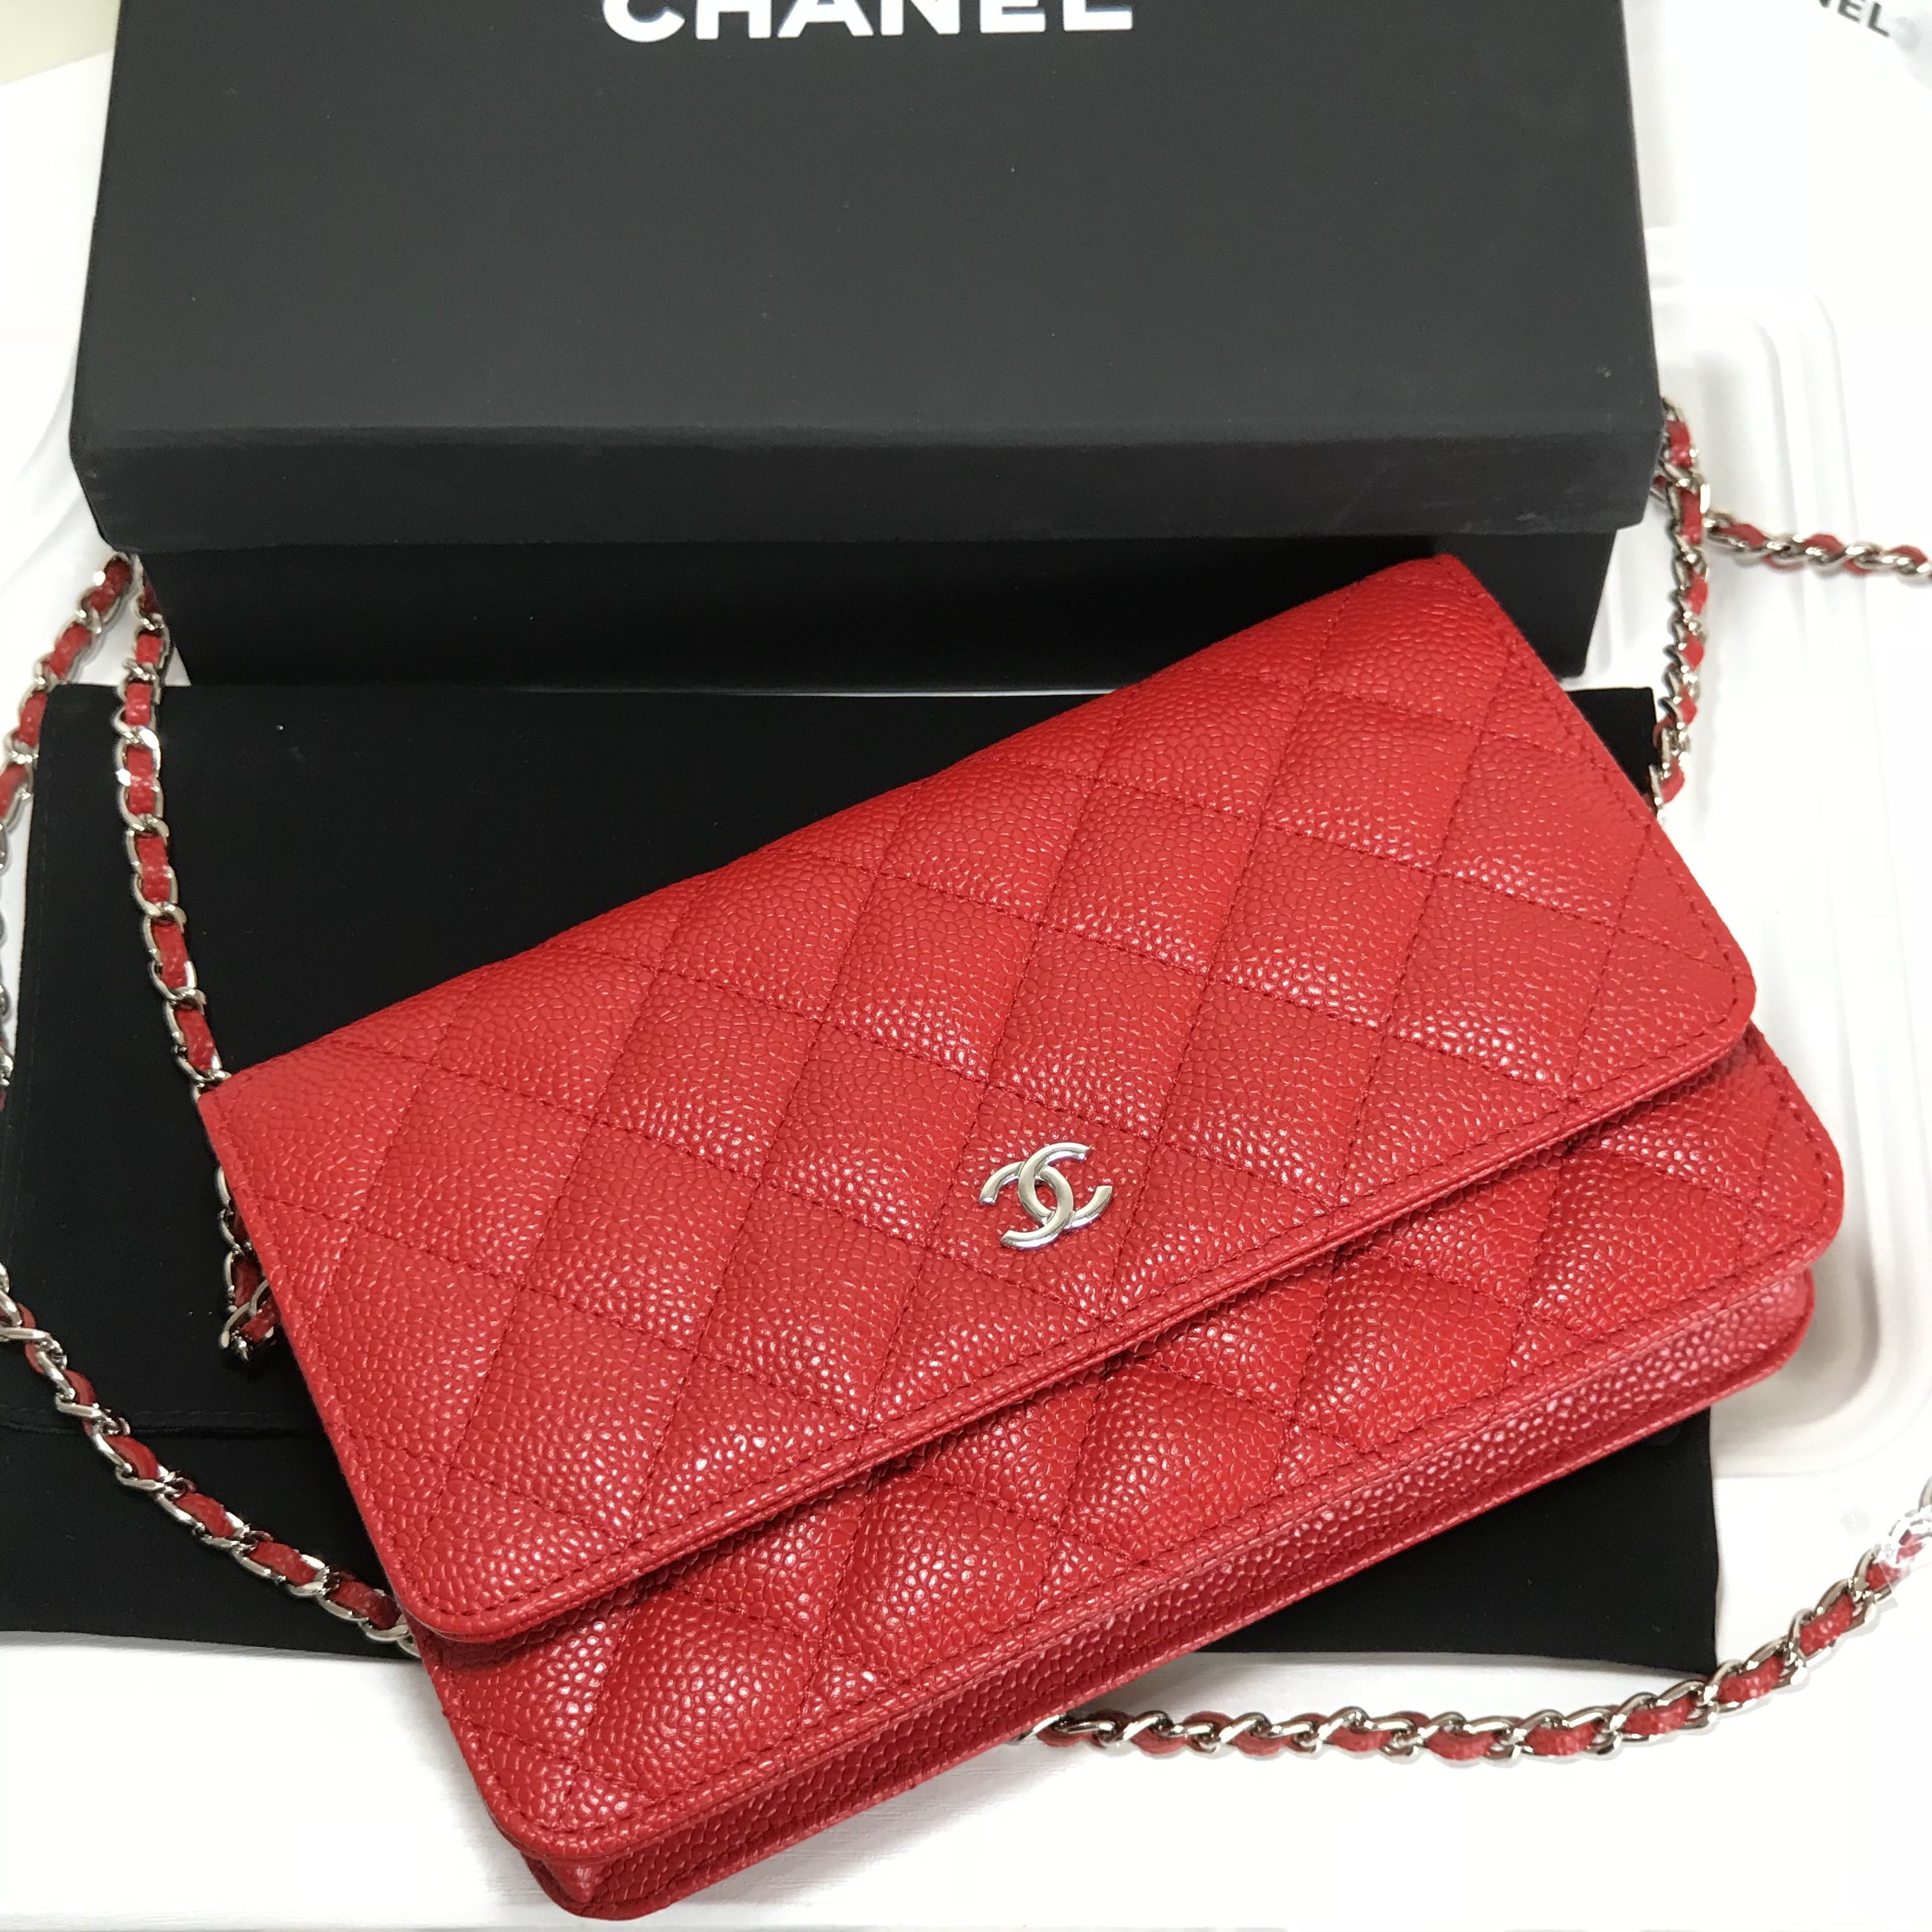 b589a618 Chanel red caviar WOC wallet of chain original leather version ...